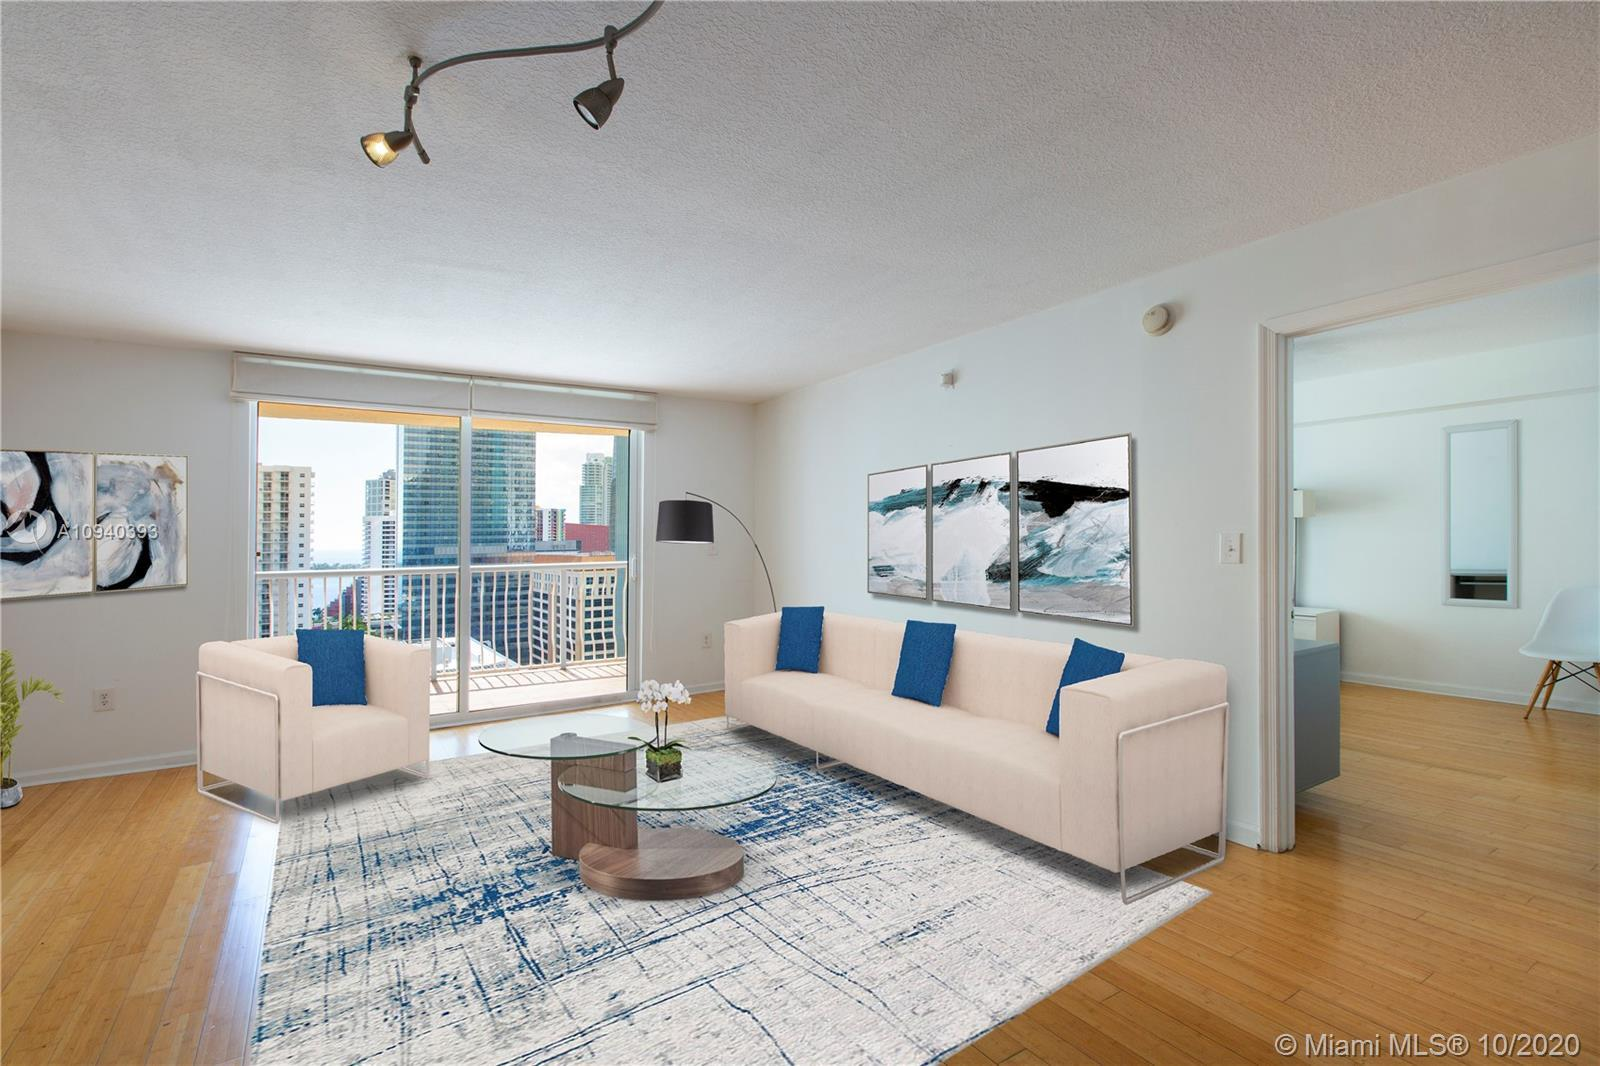 Enjoy this spectacular 1/1 condo located in the heart of Brickell within walking distance to Mary Br